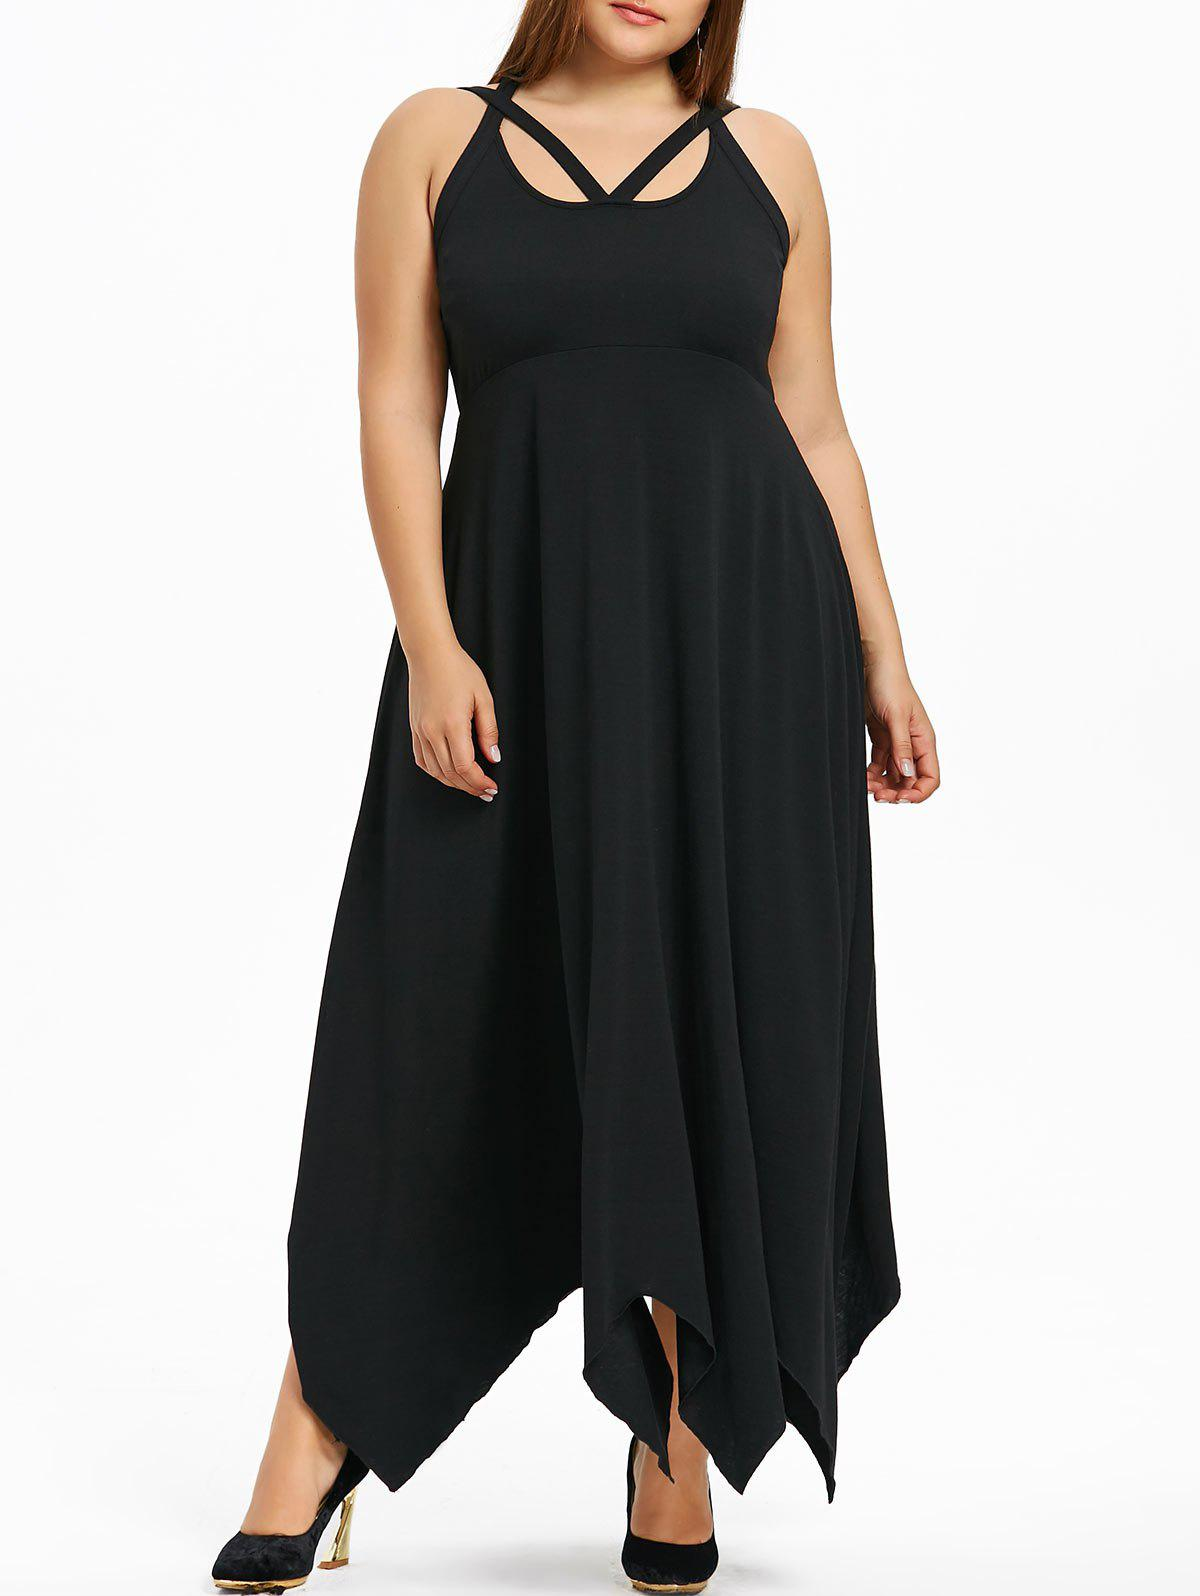 2018 Plus Size Empire Waist Maxi Handkerchief Dress Black Xl In